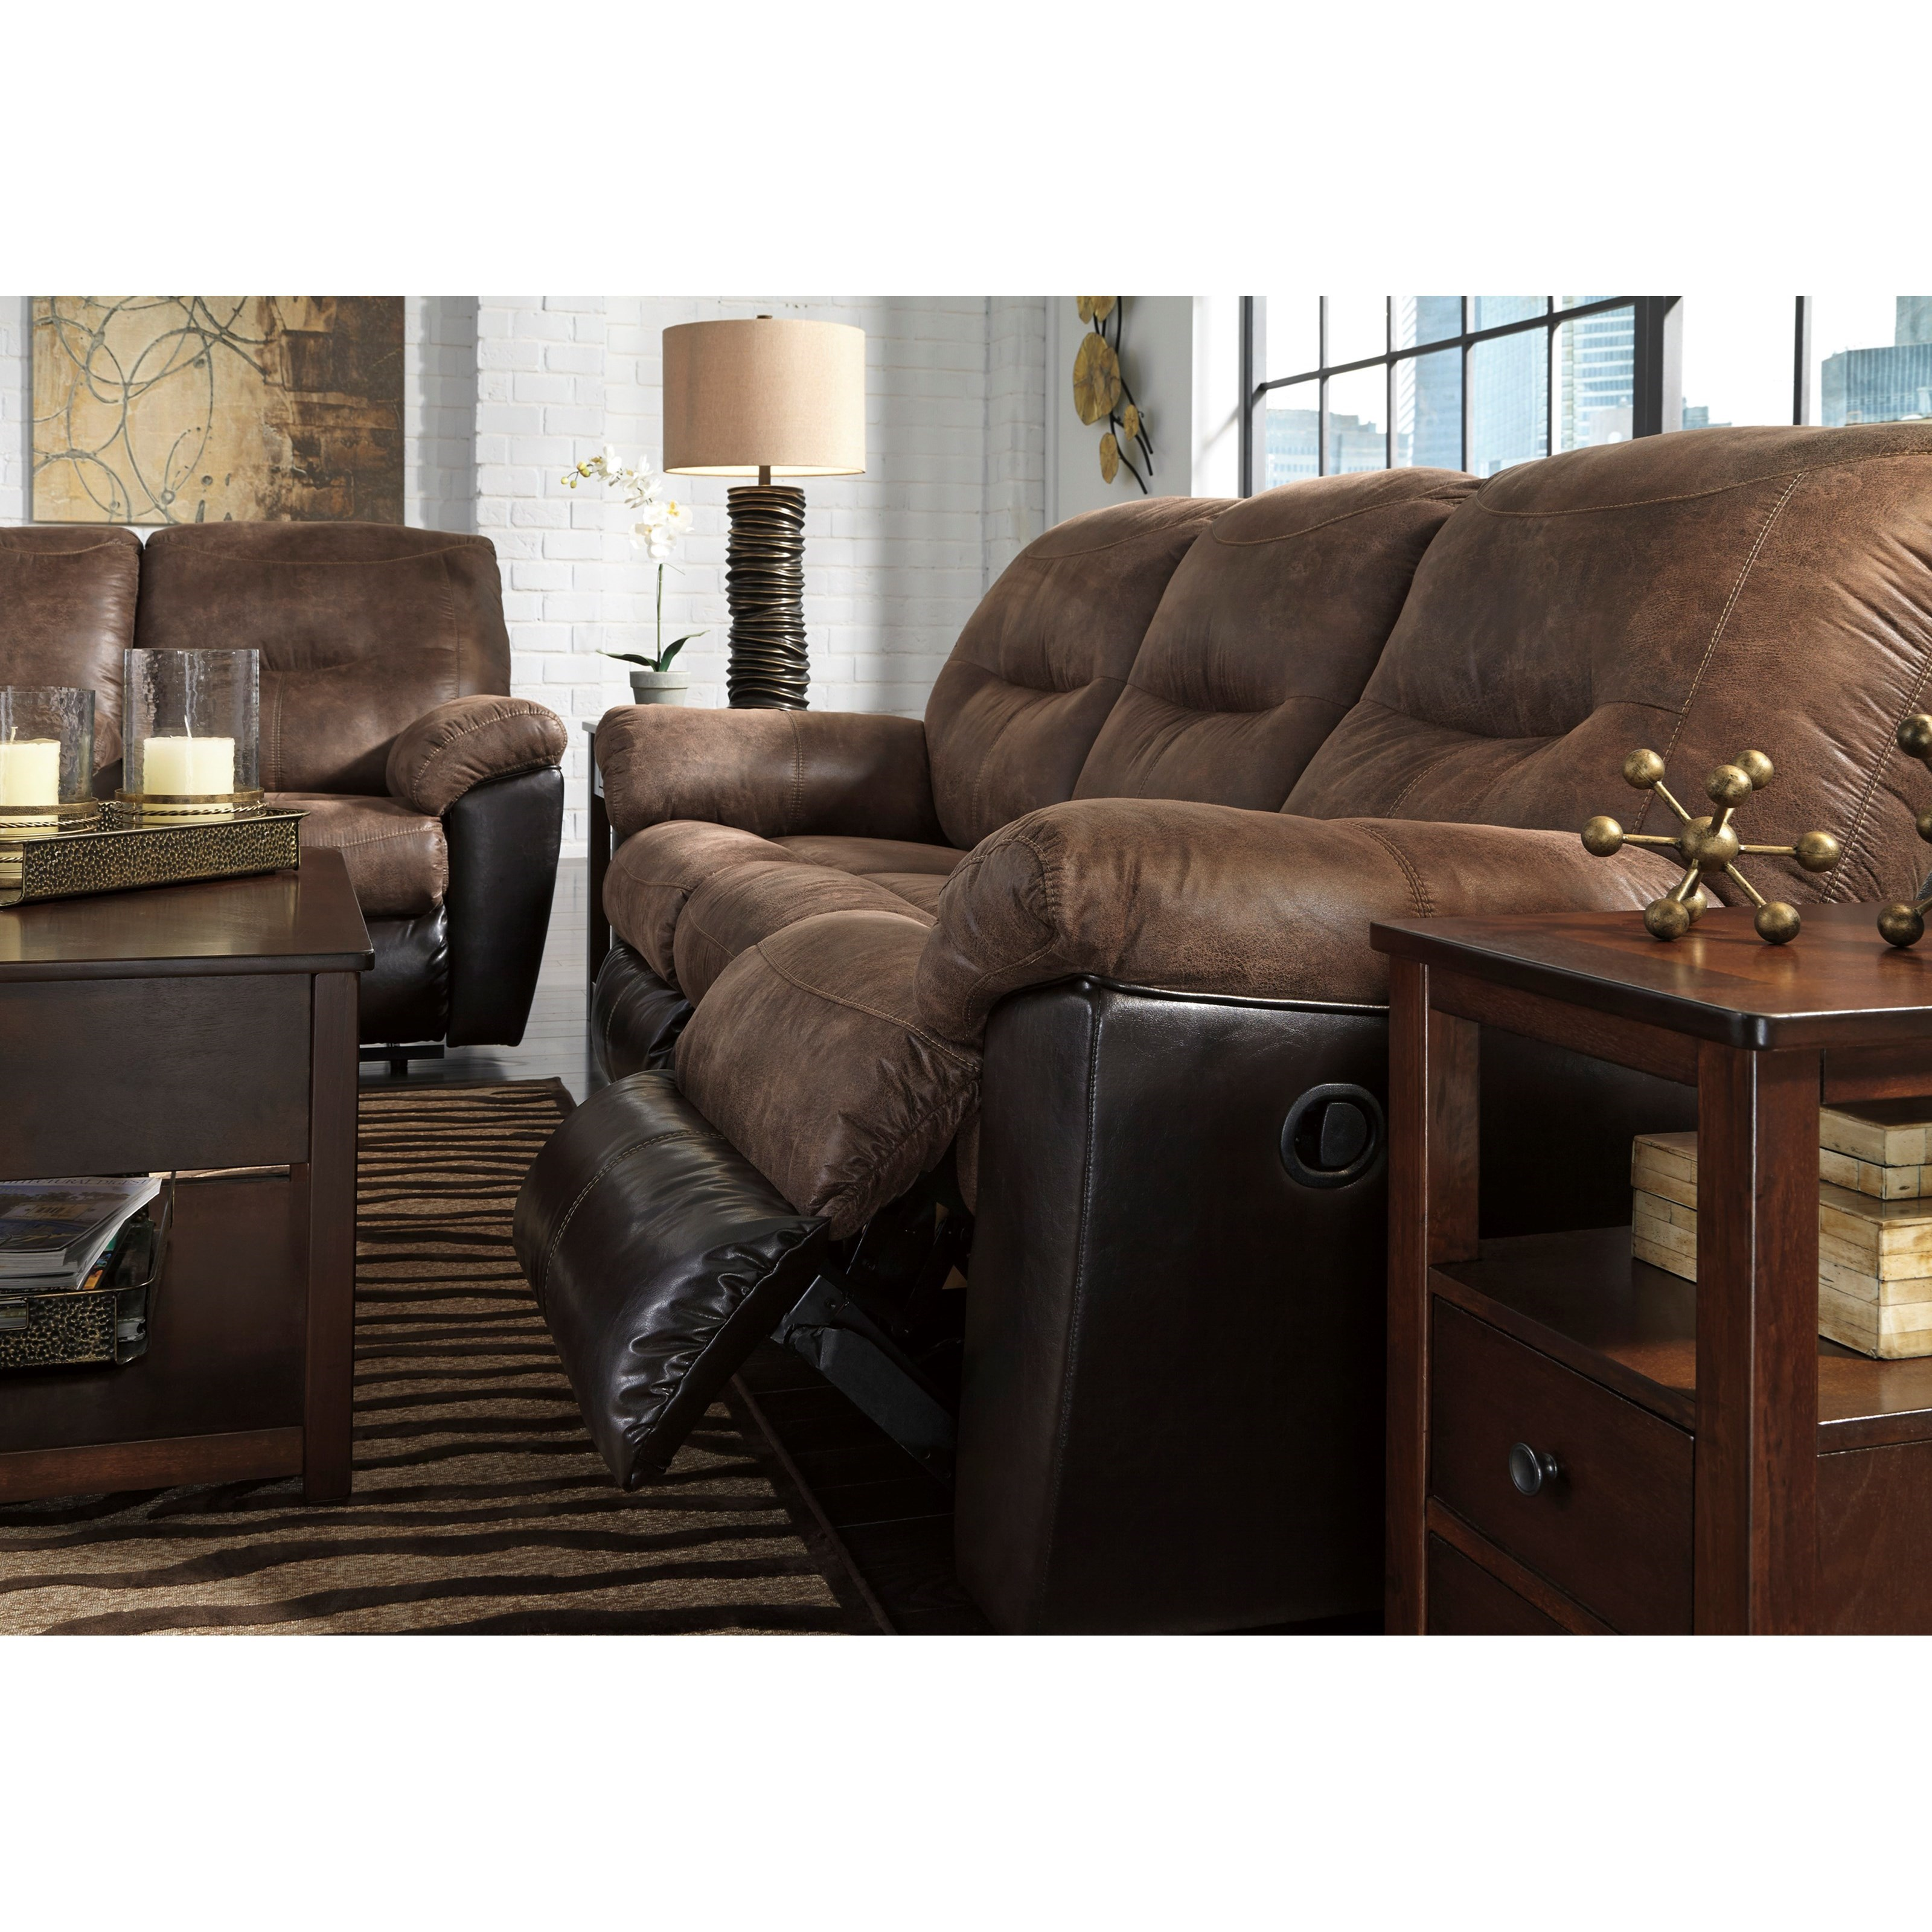 Sectional Sofa Design Leather: Two-Tone Faux Leather Reclining Sofa By Signature Design